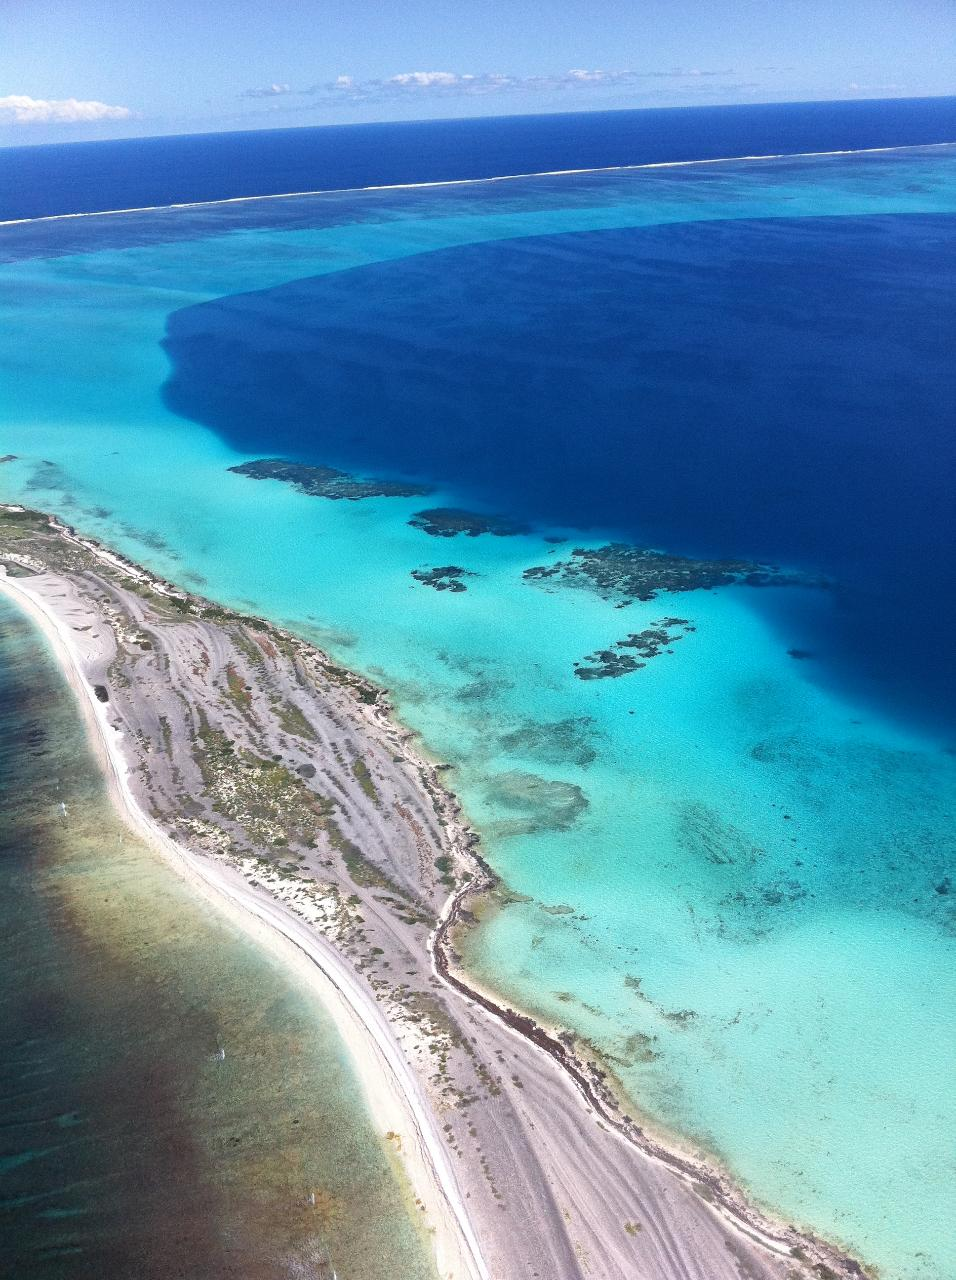 Shipwreck Special Nature Tour of the Abrolhos Islands